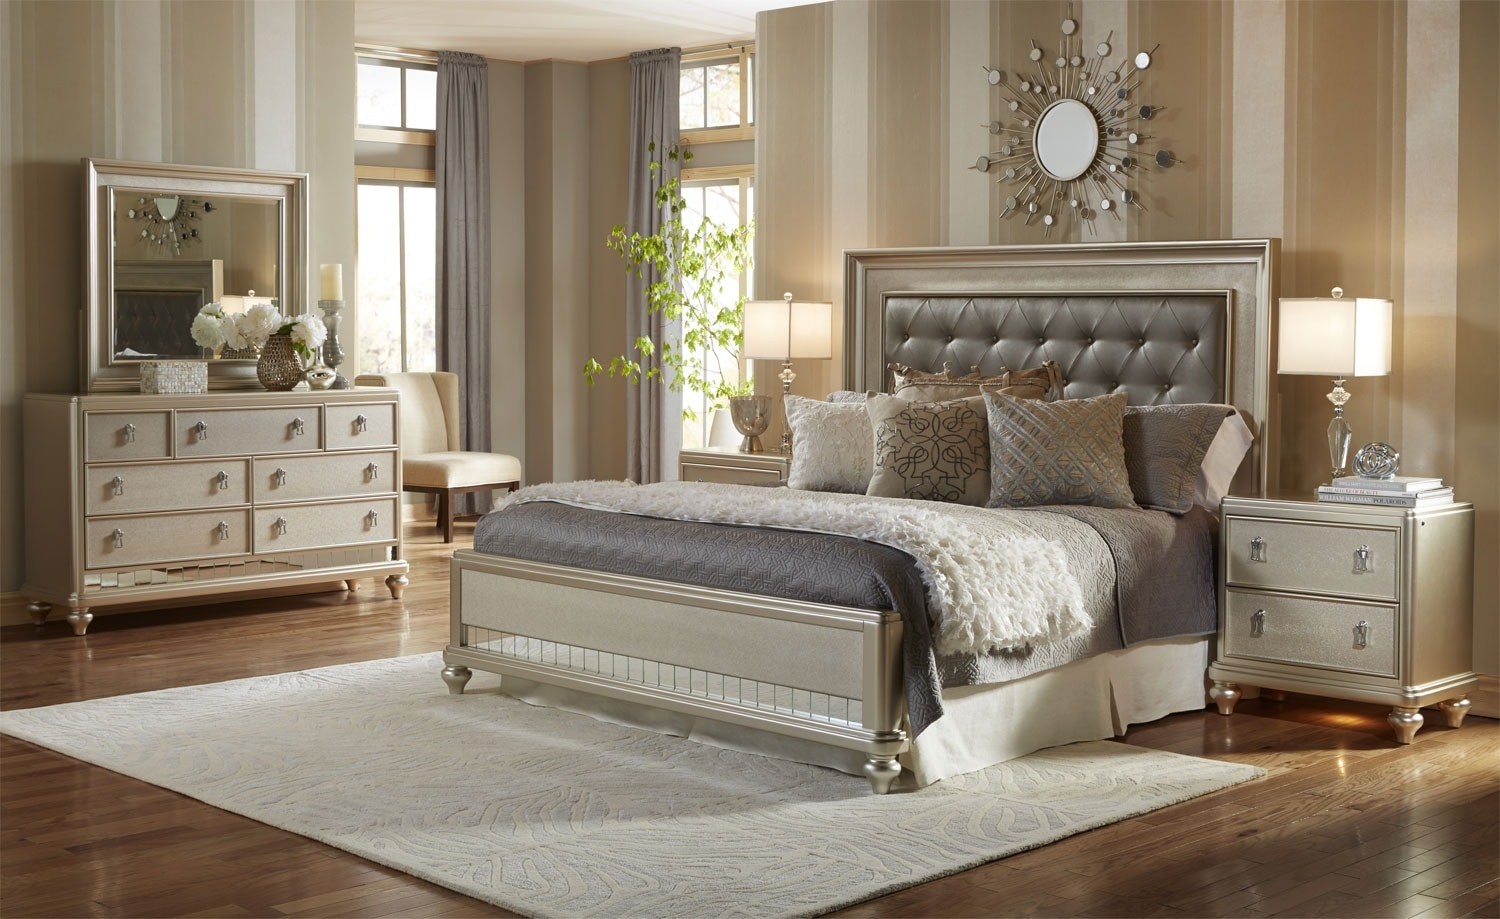 Bedroom Furniture - Diva 6-Piece King Bedroom Package